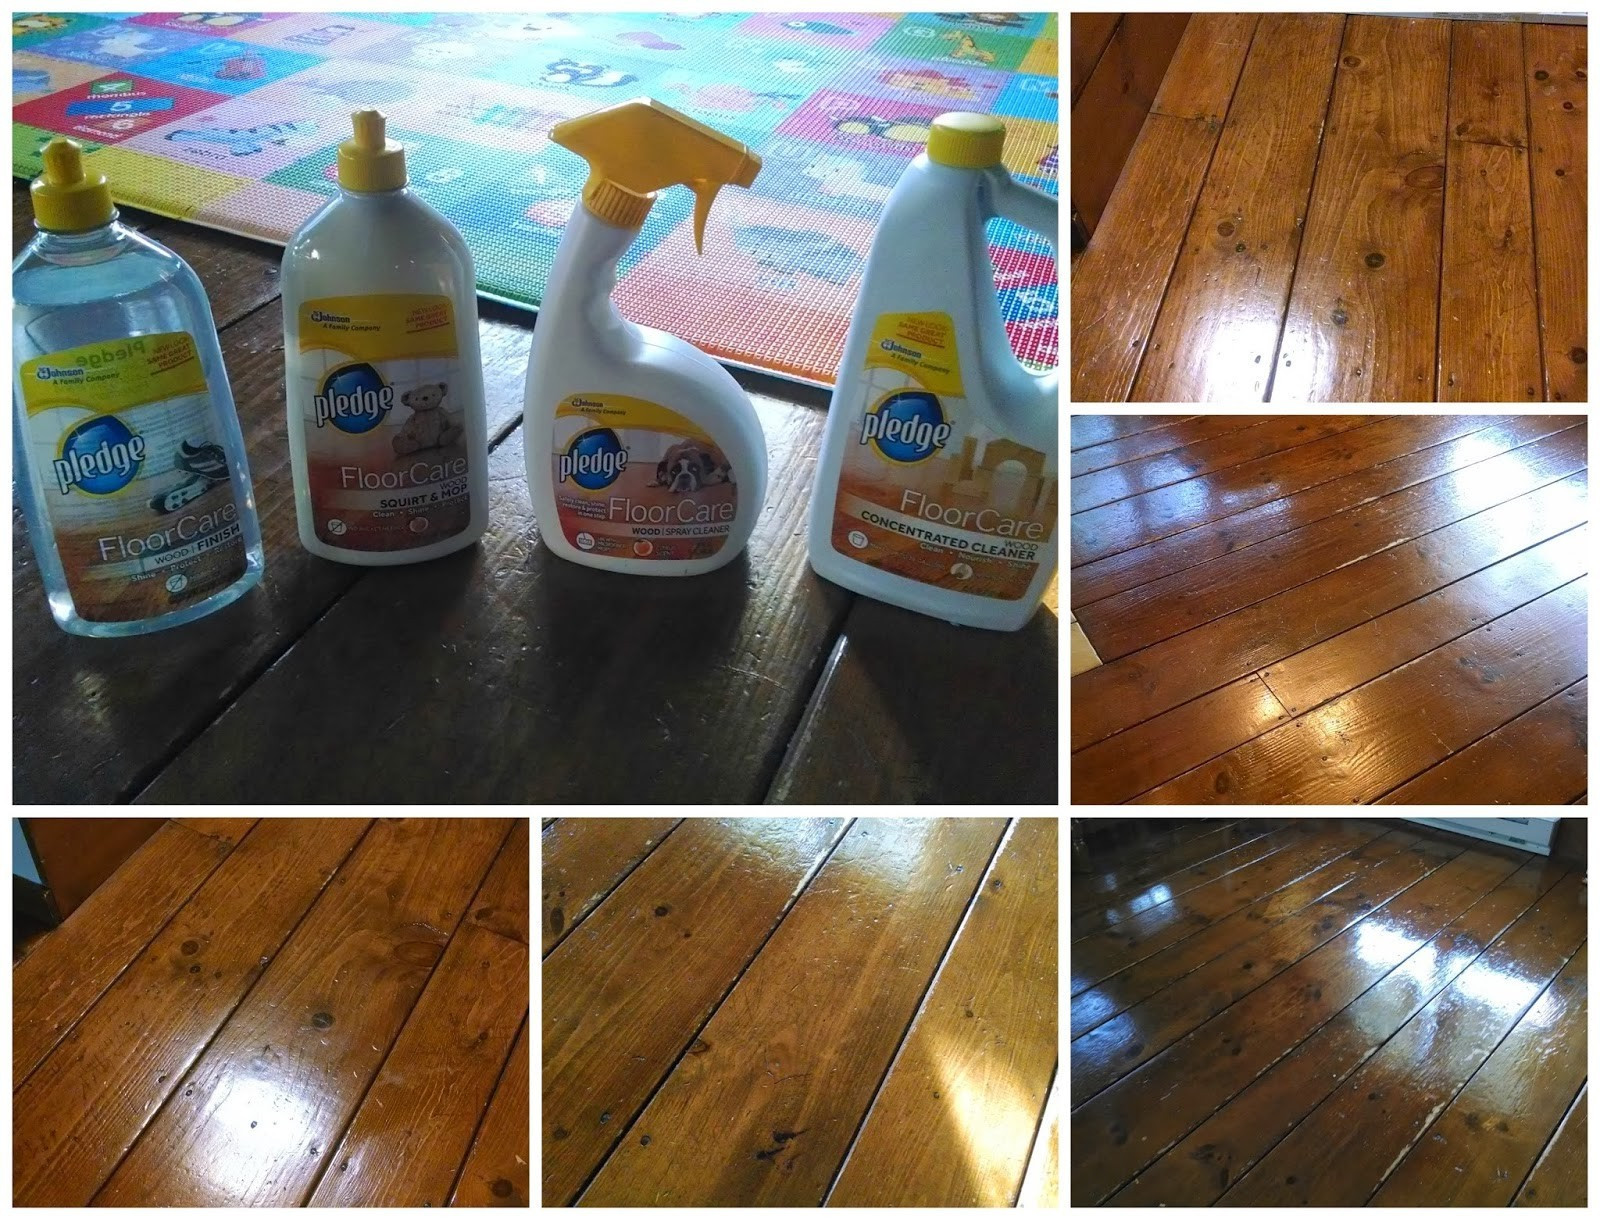 best hardwood floor cleaner of 17 awesome what to use to clean hardwood floors image dizpos com pertaining to what to use to clean hardwood floors fresh 24 best pics best ways to clean hardwood